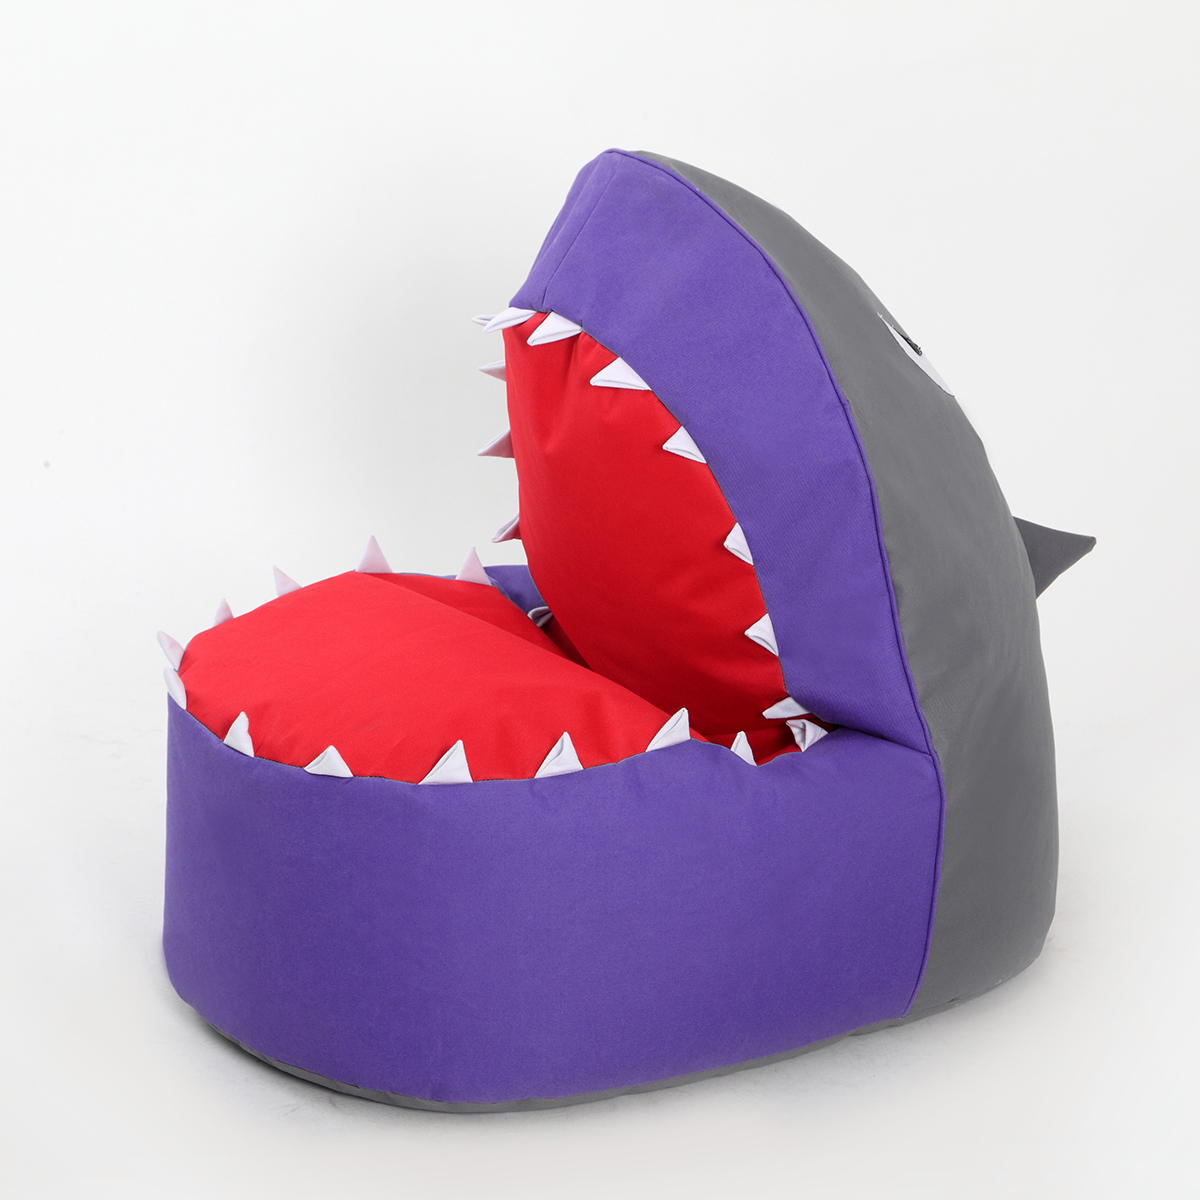 Leisure bean bag chair Sofa children single chair Cartoon Art Shark Lazy Sofa Creative Chair Bed Couch Couch Rice Animal Seat-in Baby Seats u0026 Sofa from ... & Leisure bean bag chair Sofa children single chair Cartoon Art Shark ...